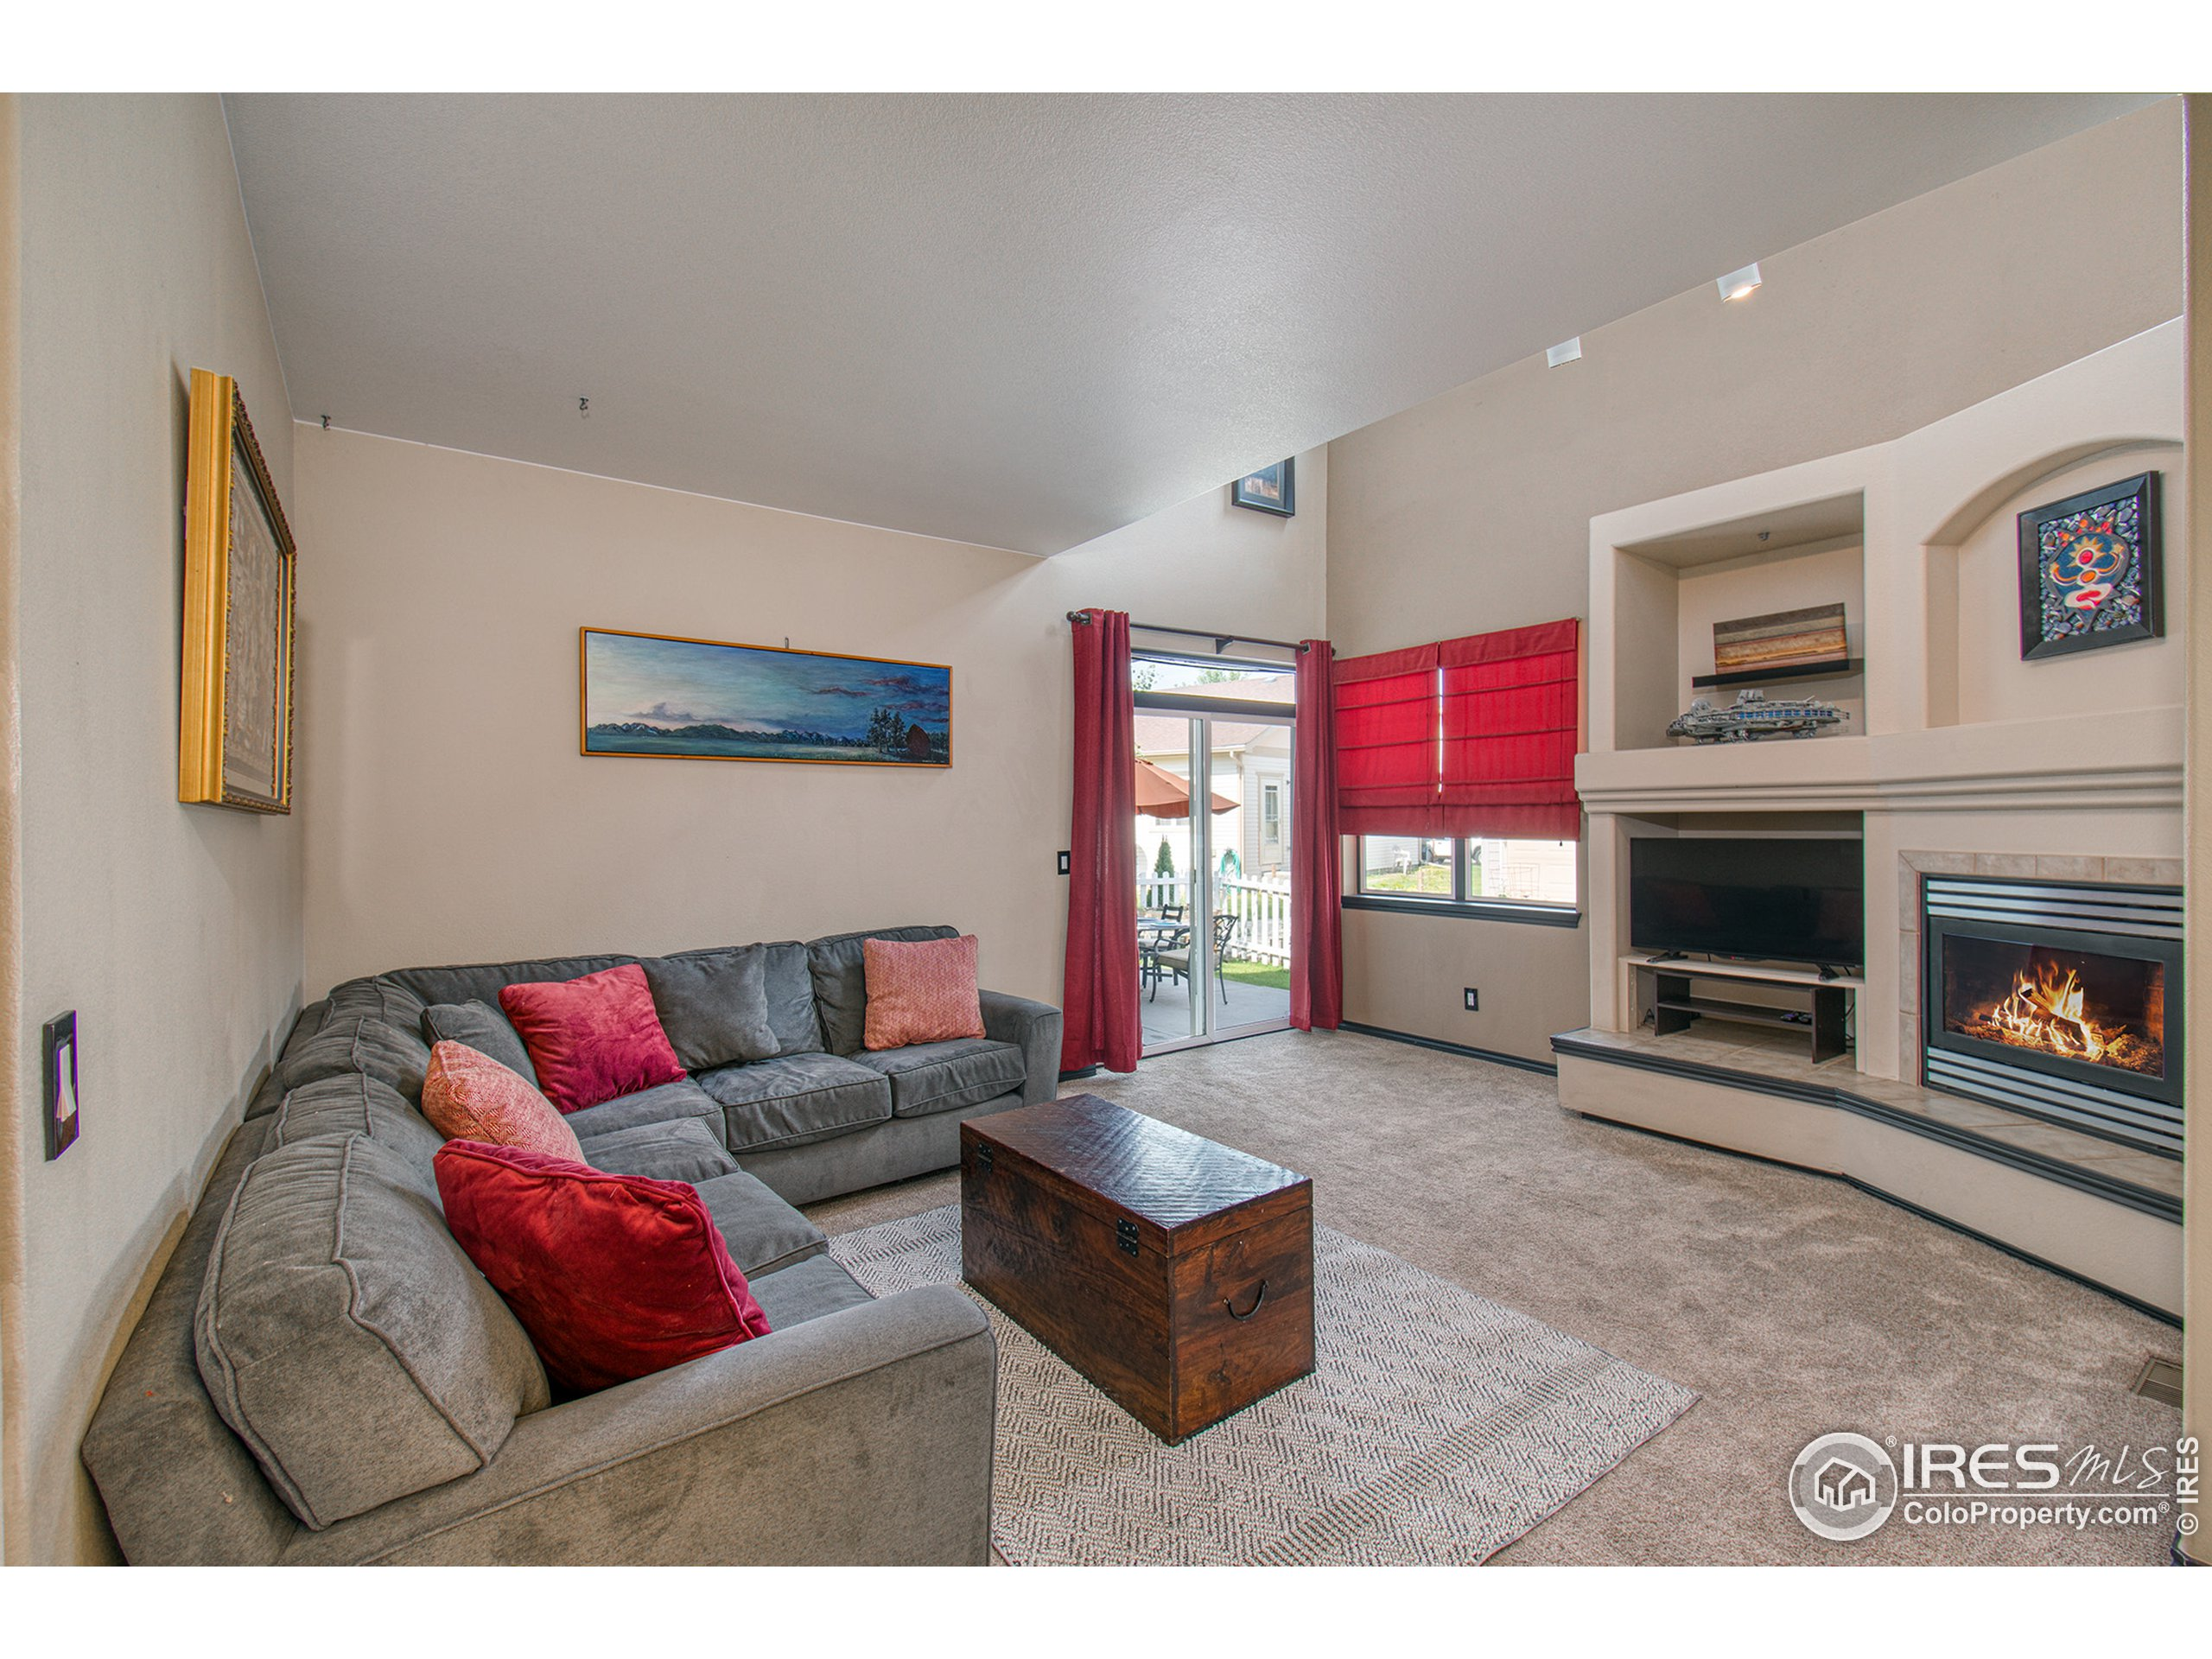 Living room opens to back yard.